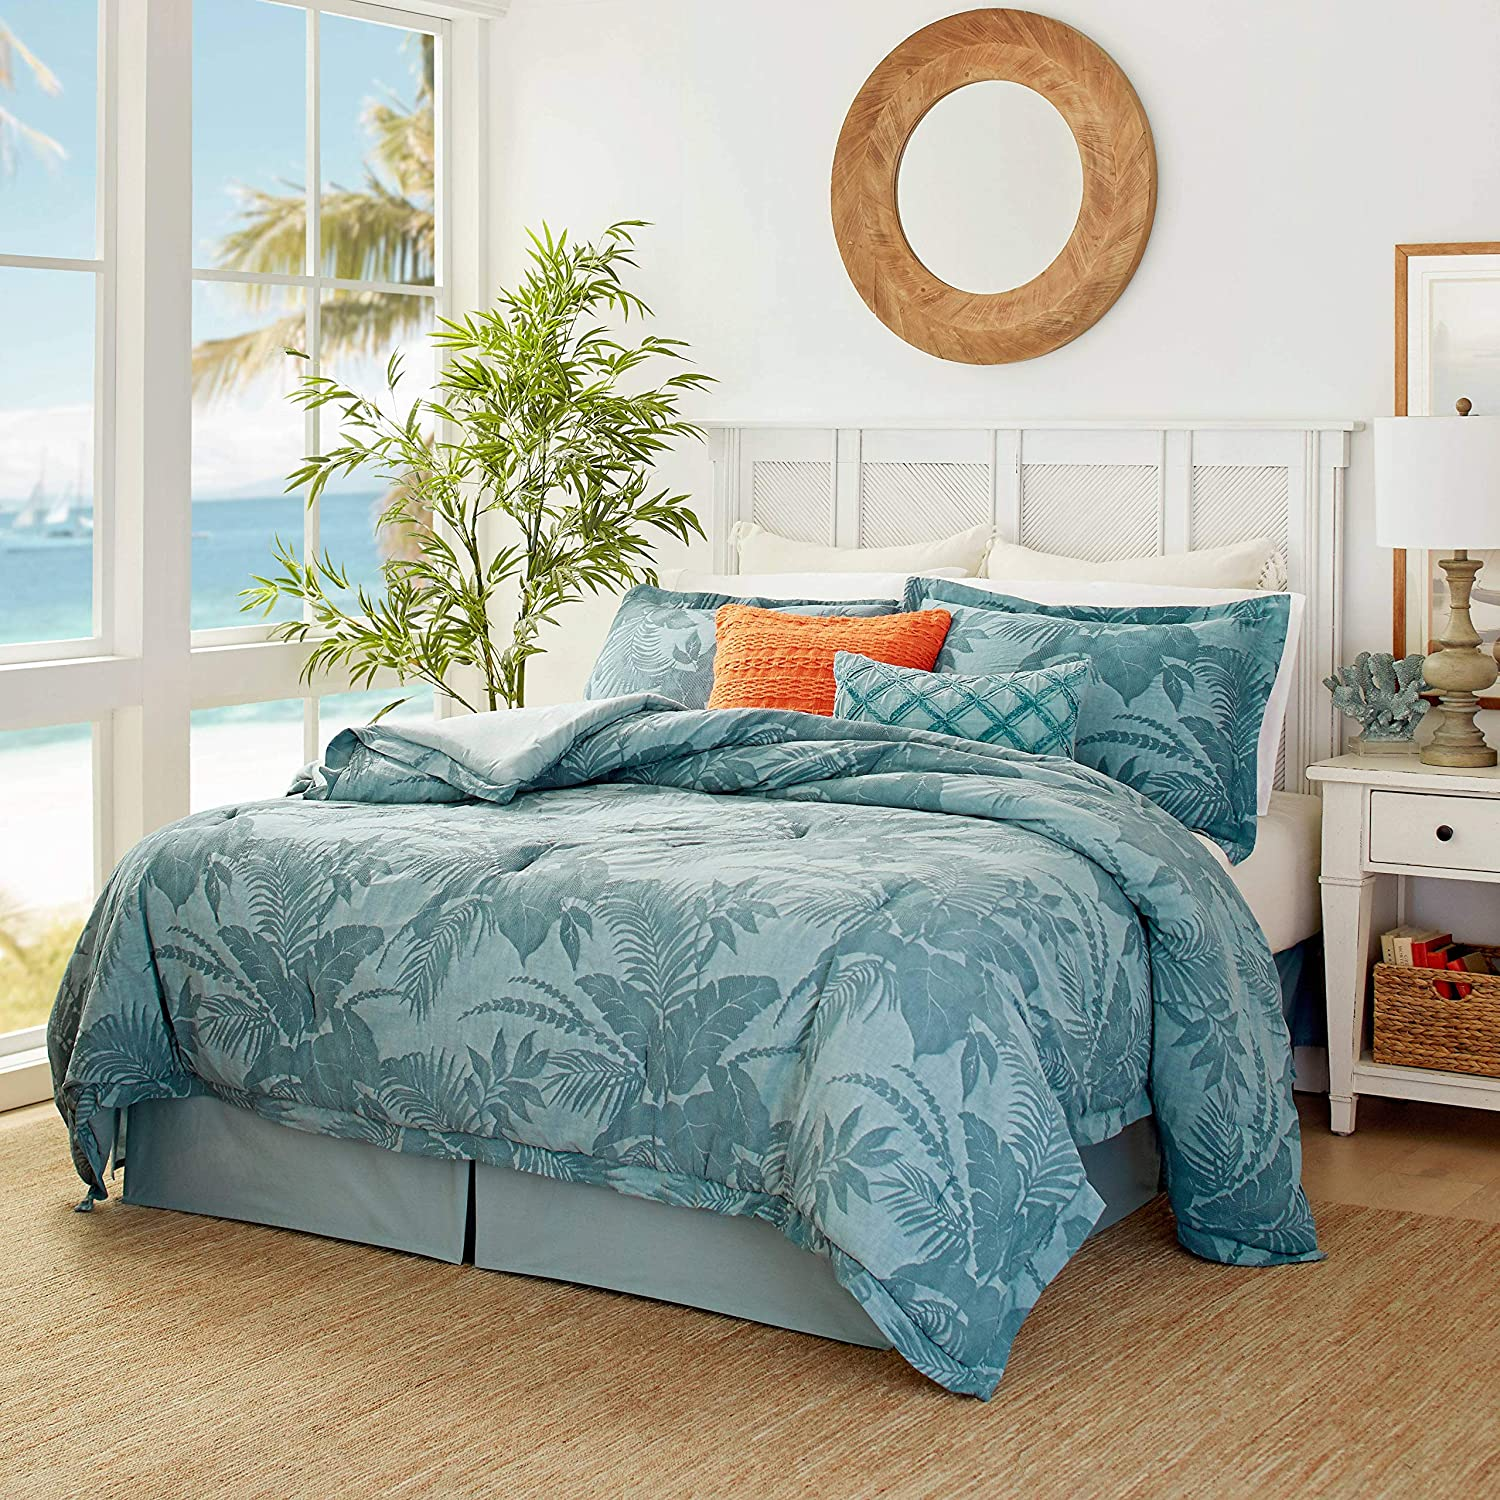 Tommy Bahama Blue Abalone Comforter Set, Queen